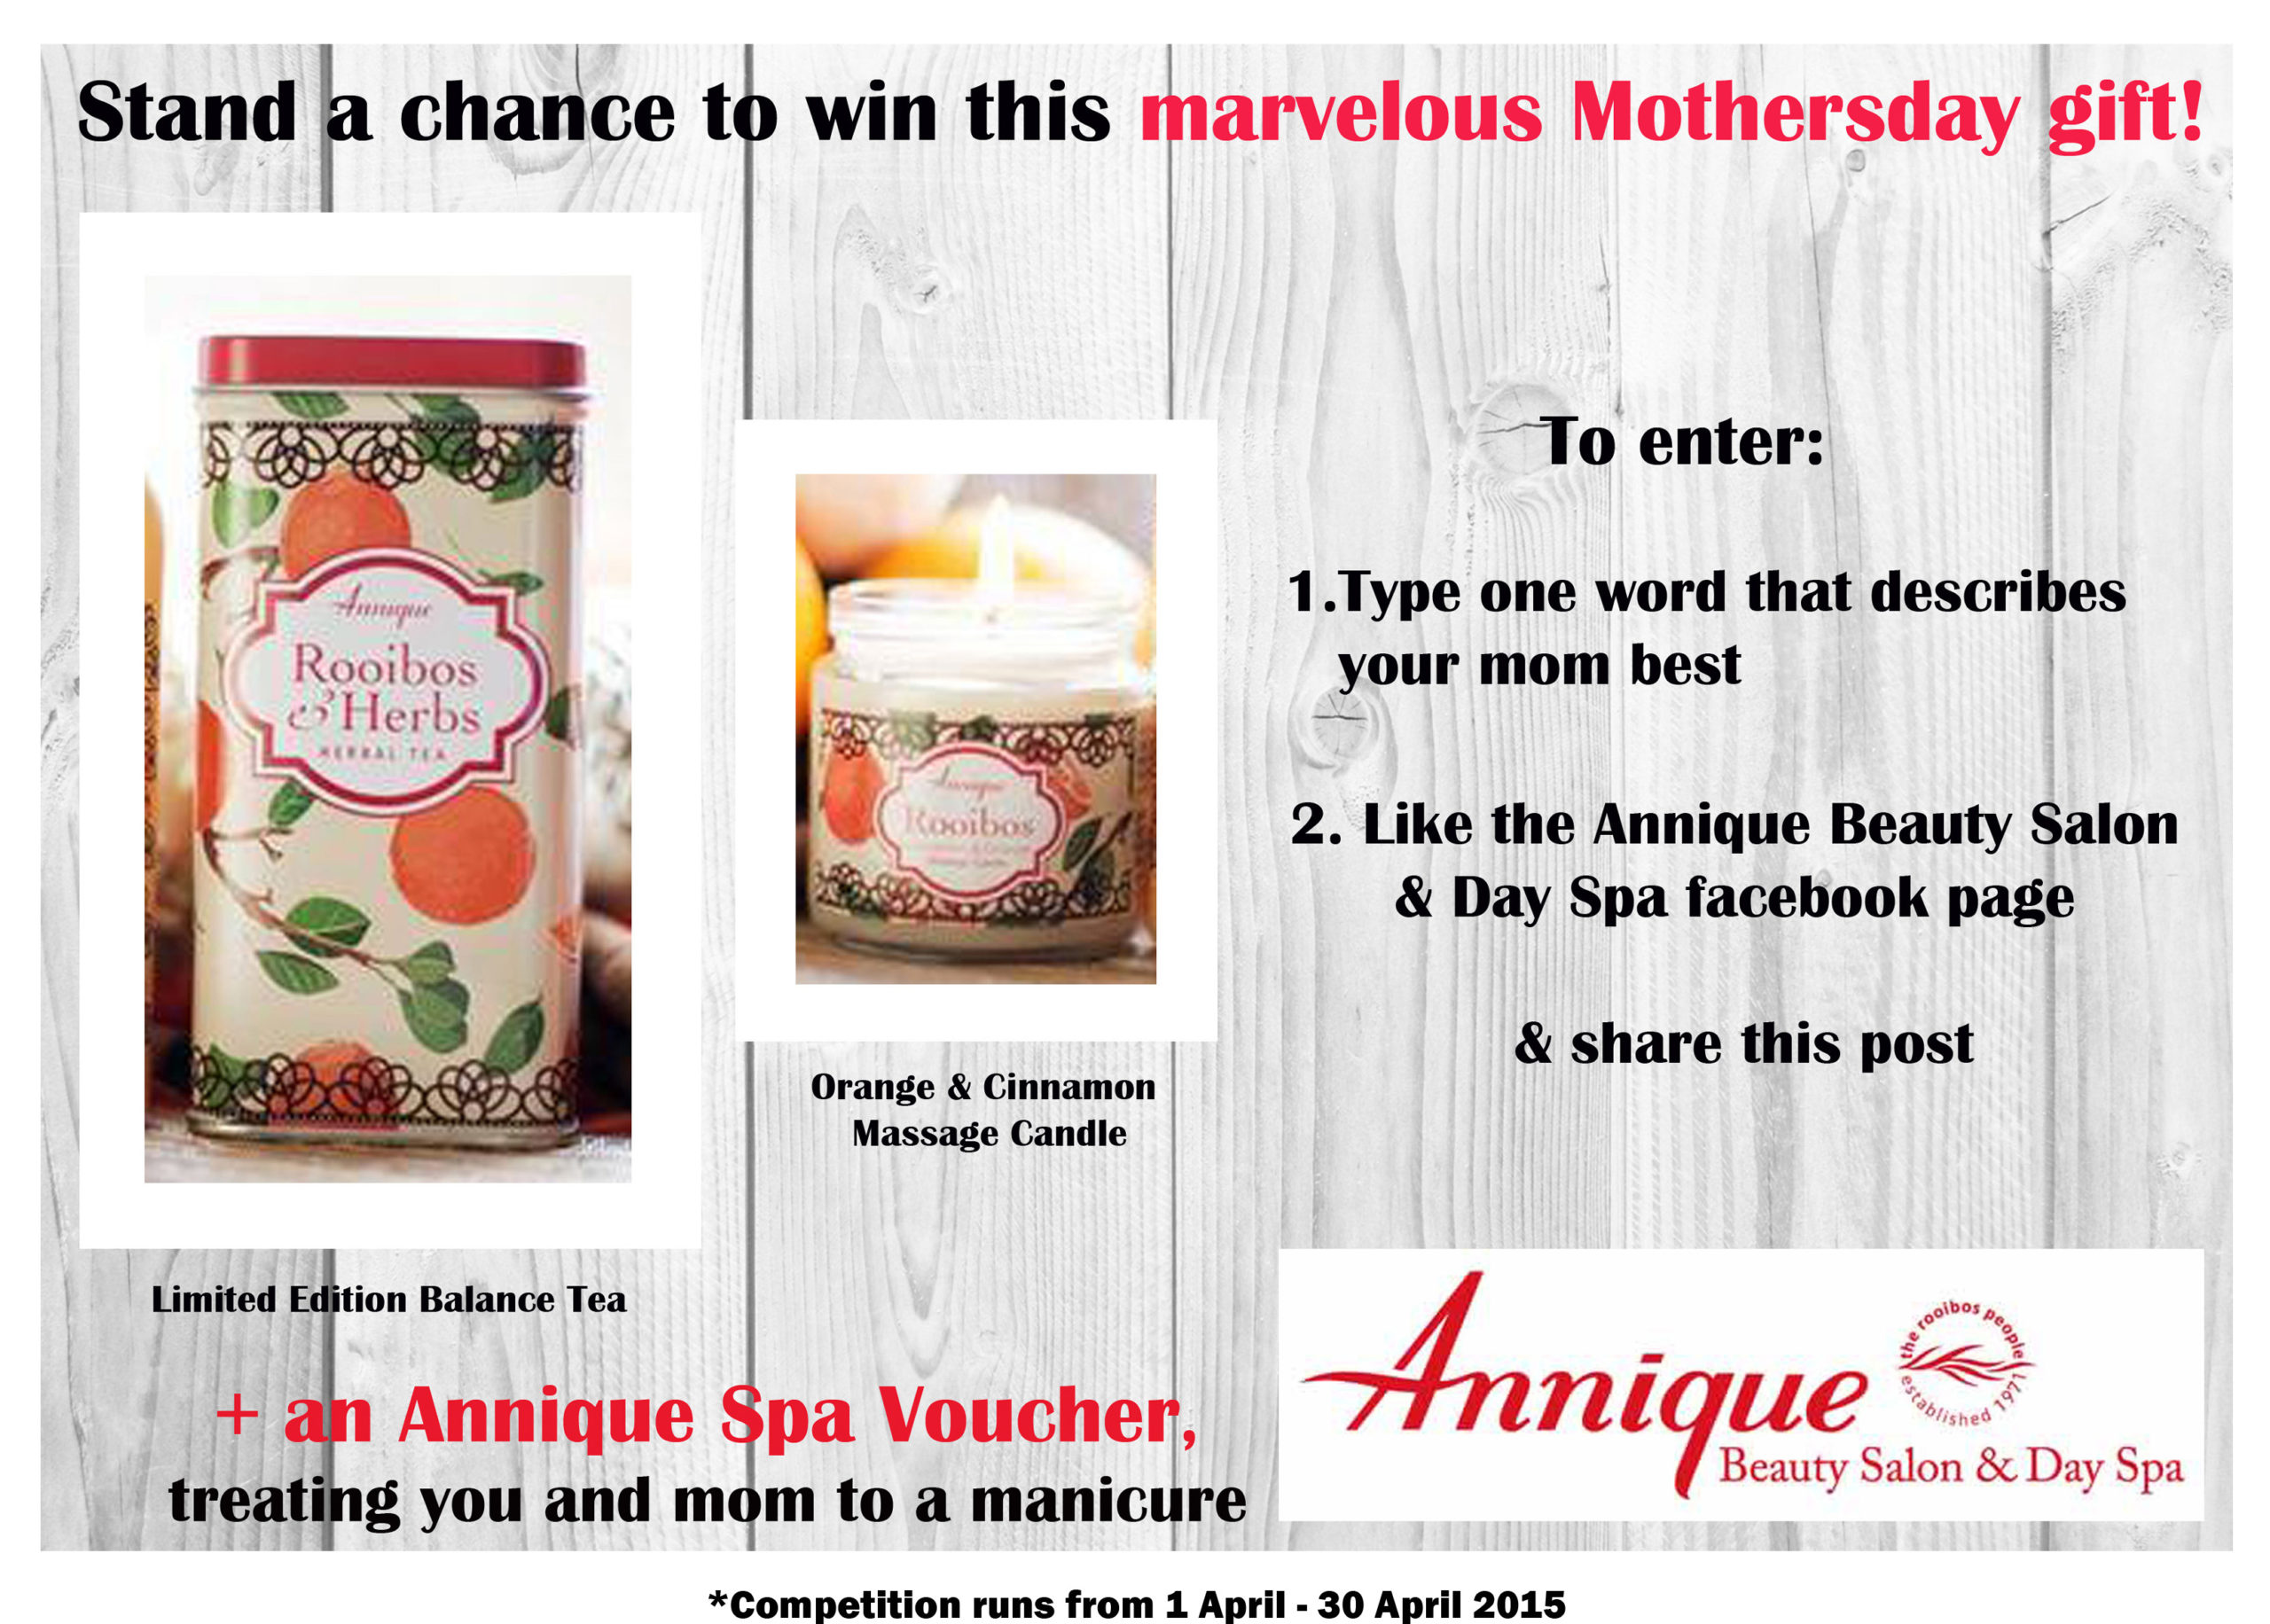 Win a marvelous Mothersday gift set for you and mom!